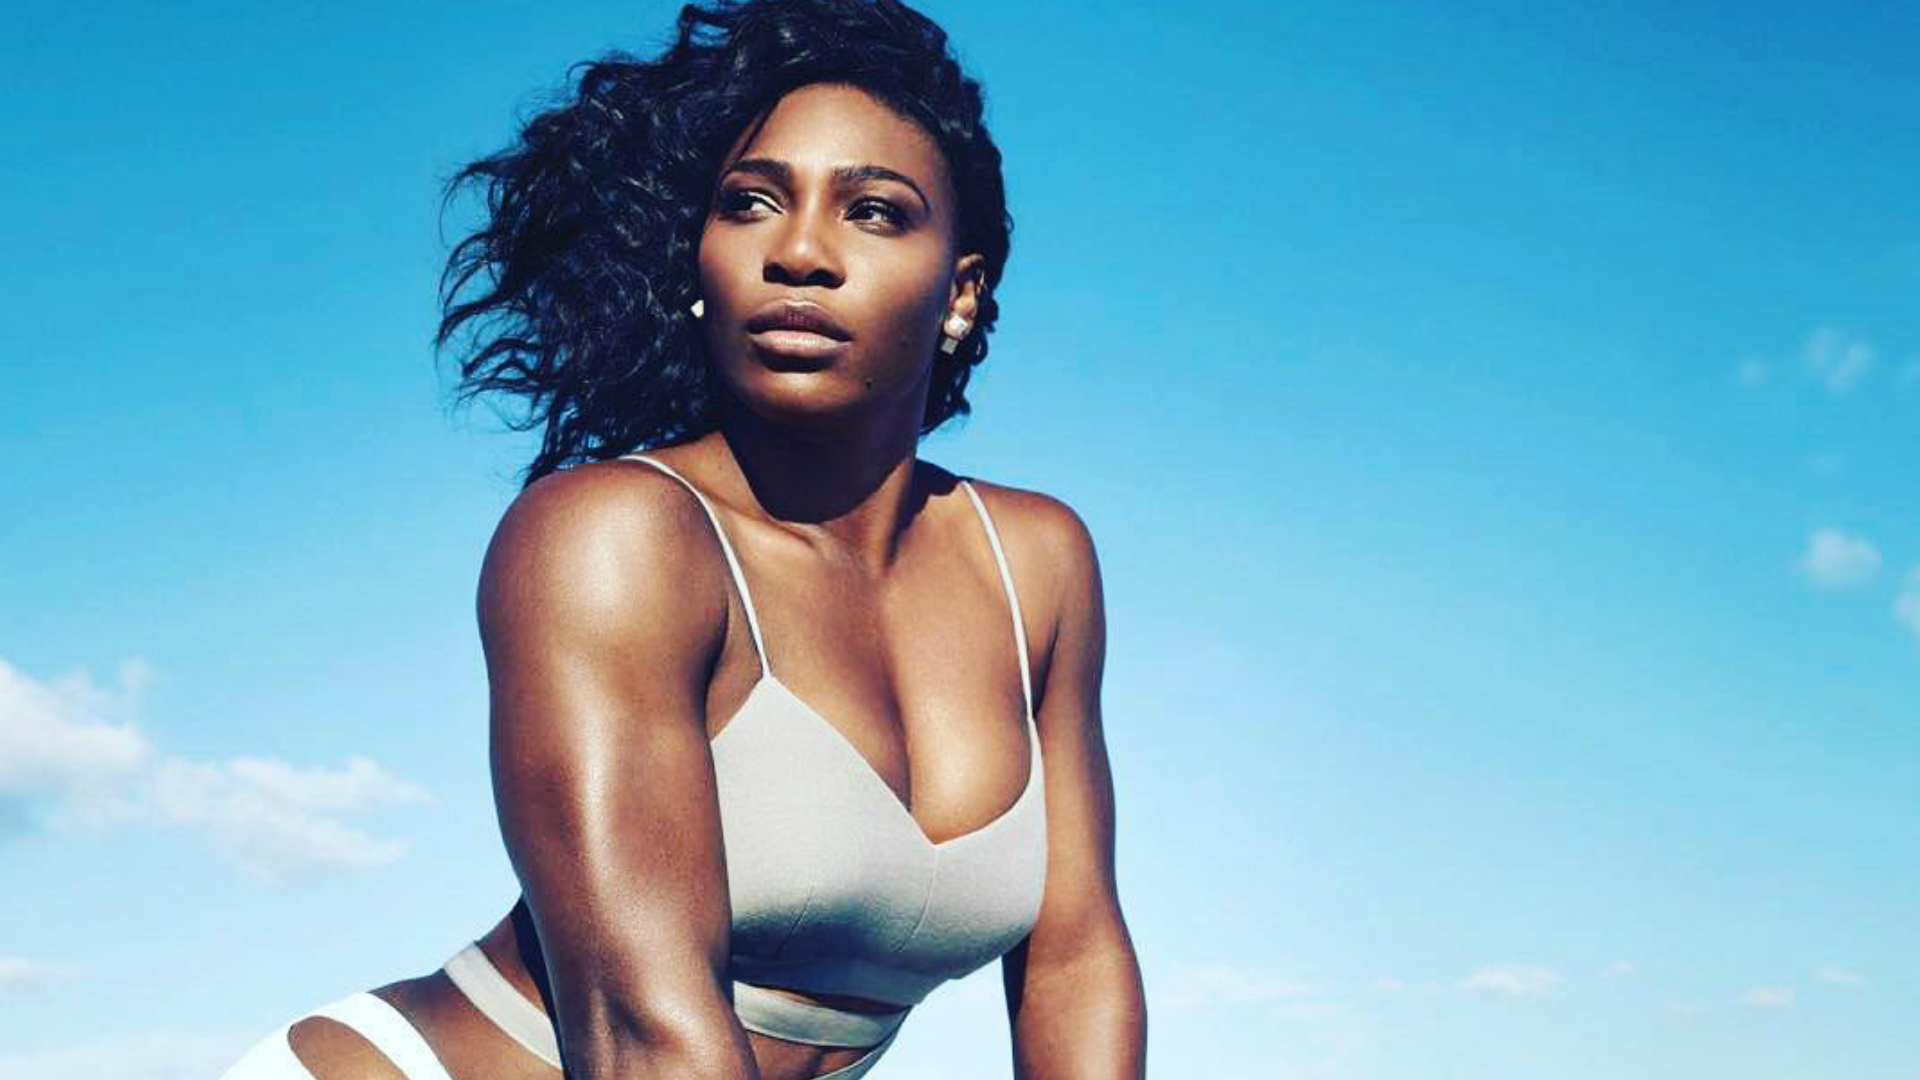 Serena Williams for Self magazine